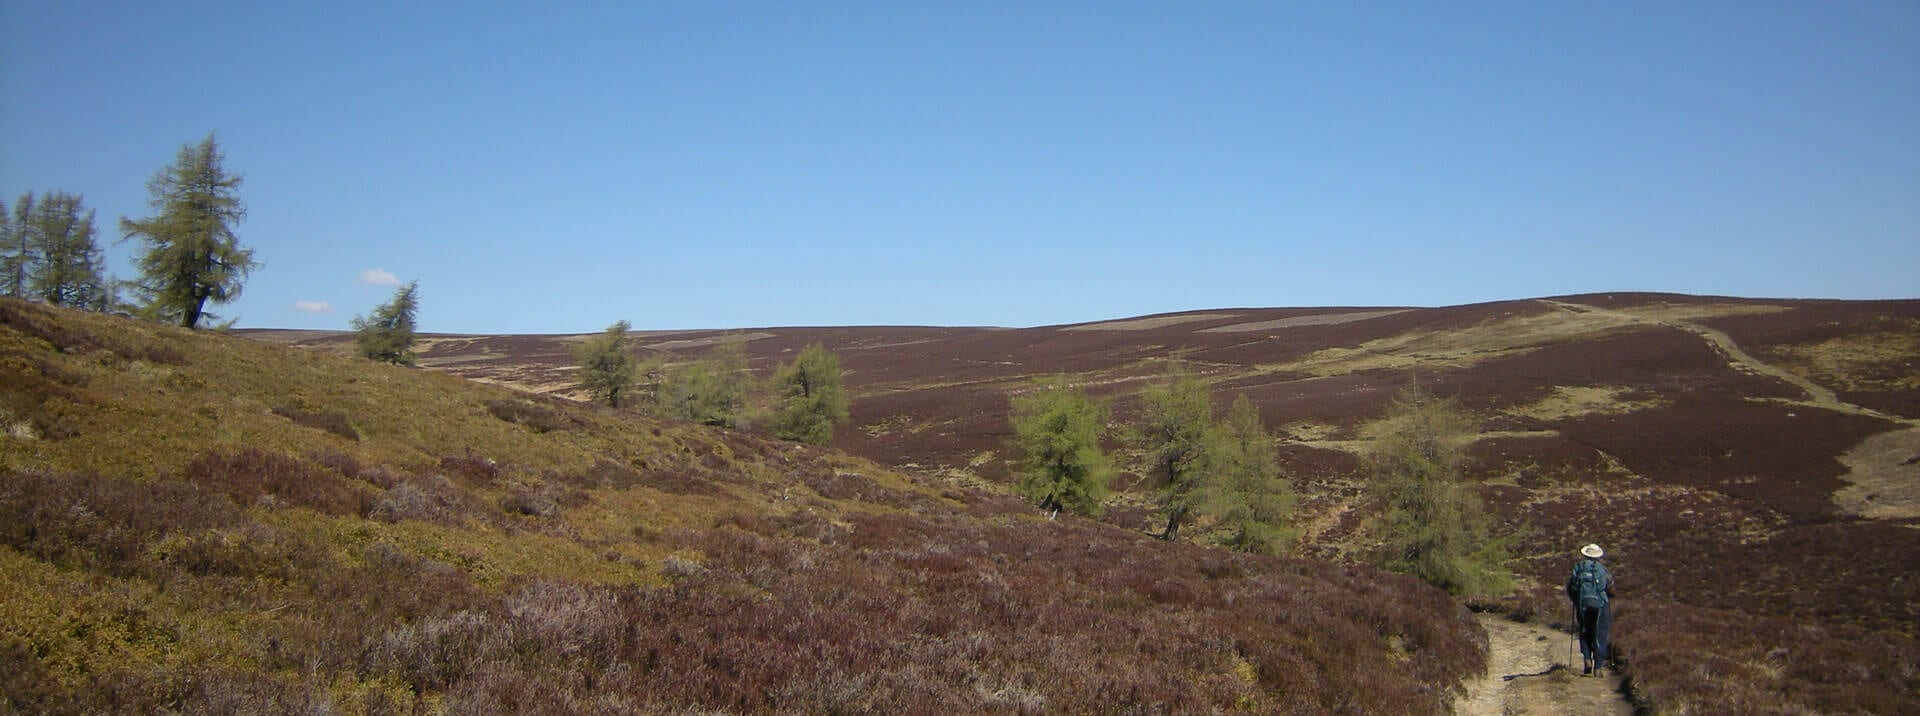 glen prosen near Prosen hostel in Angus South Cairngorms